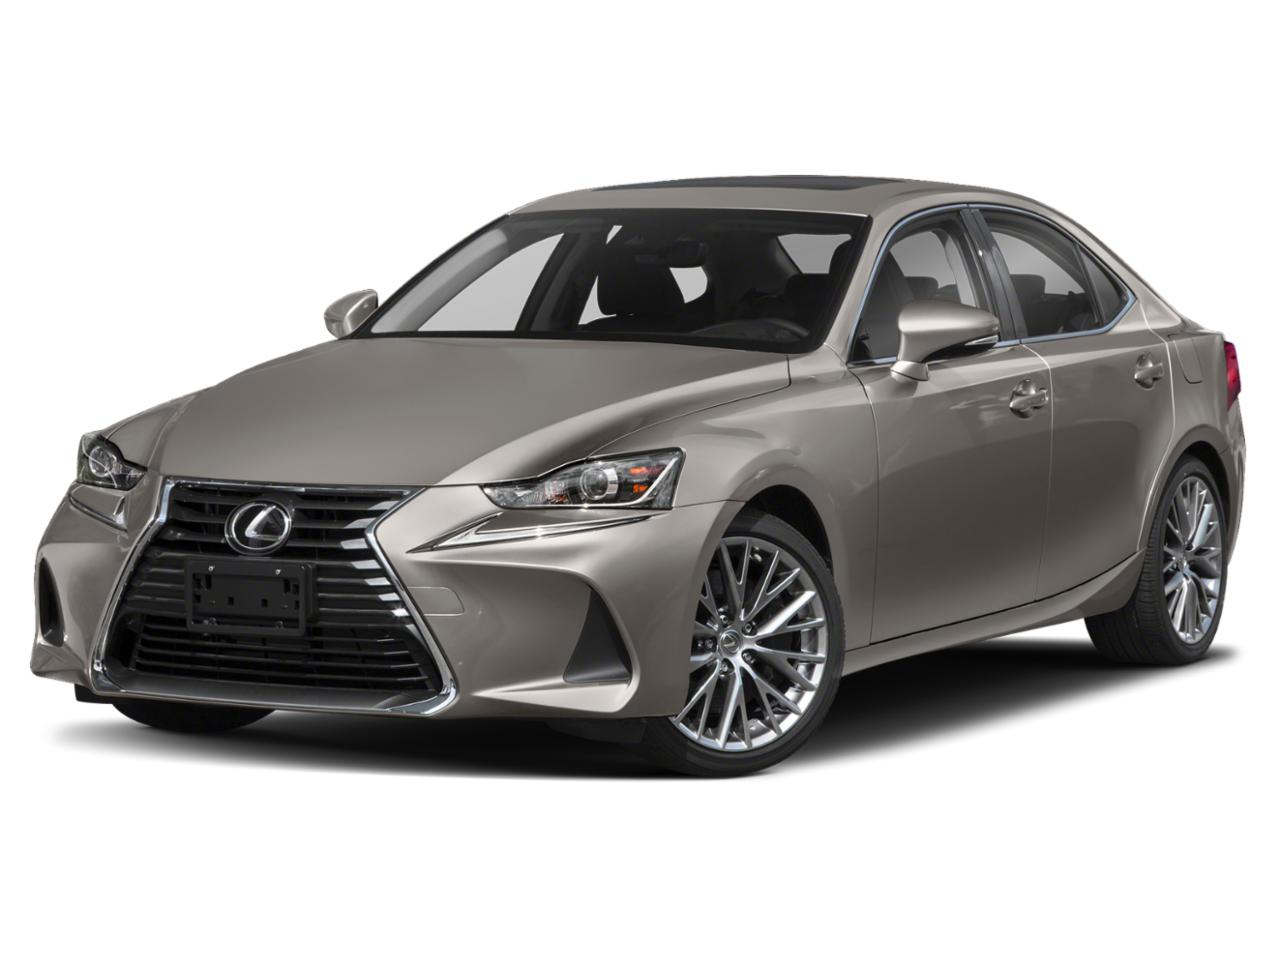 2020 Lexus IS Vehicle Photo in Dallas, TX 75235